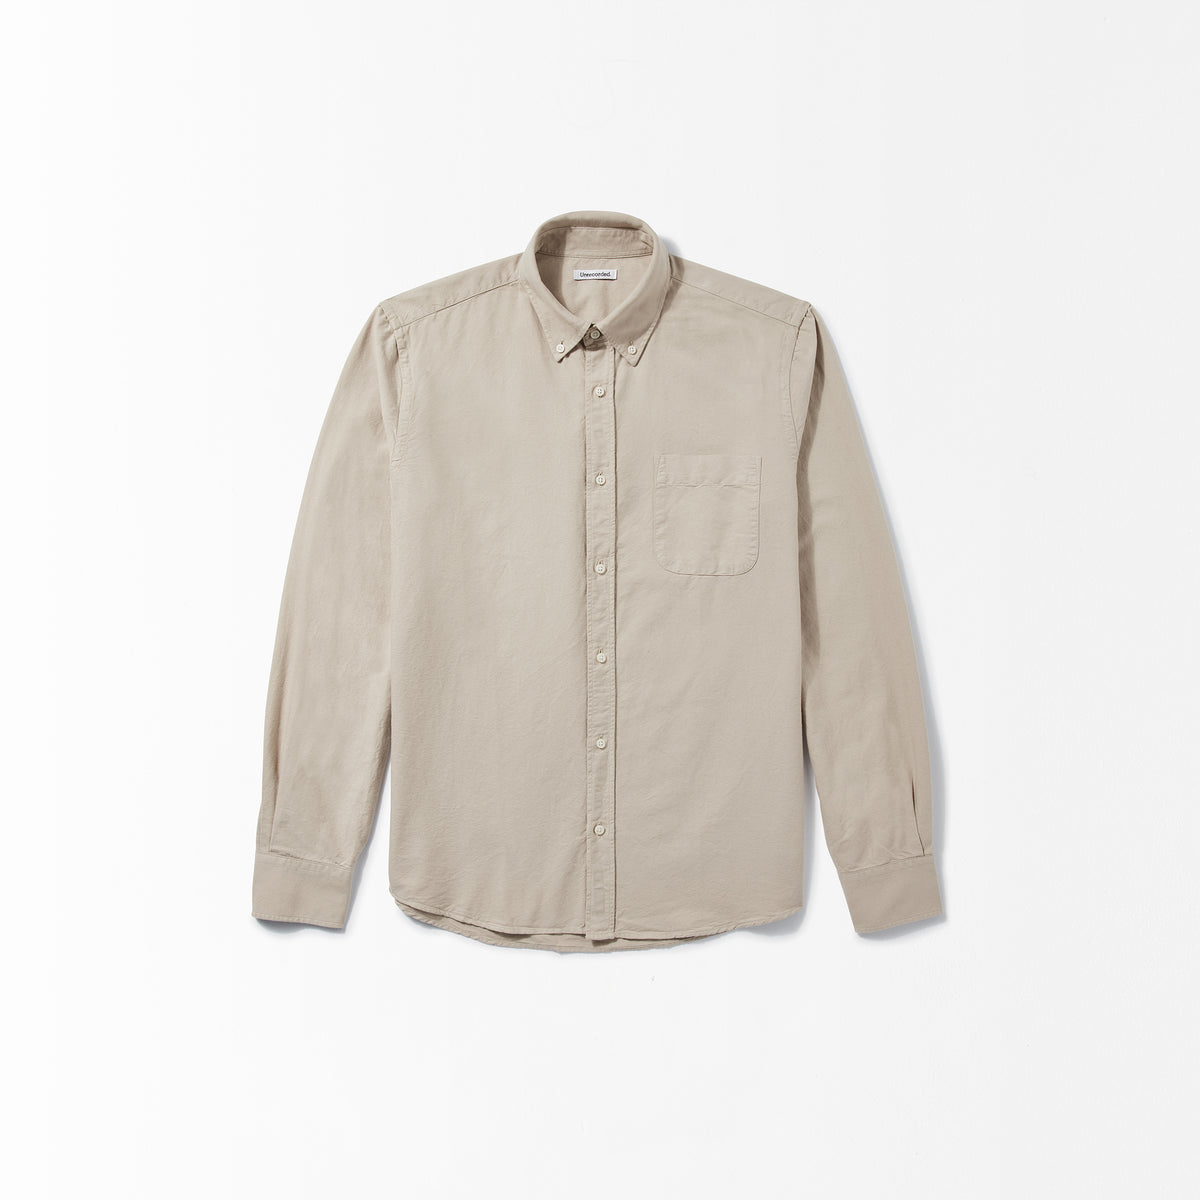 Oxford Shirt in Khaki made from Organic Cotton - Alternate